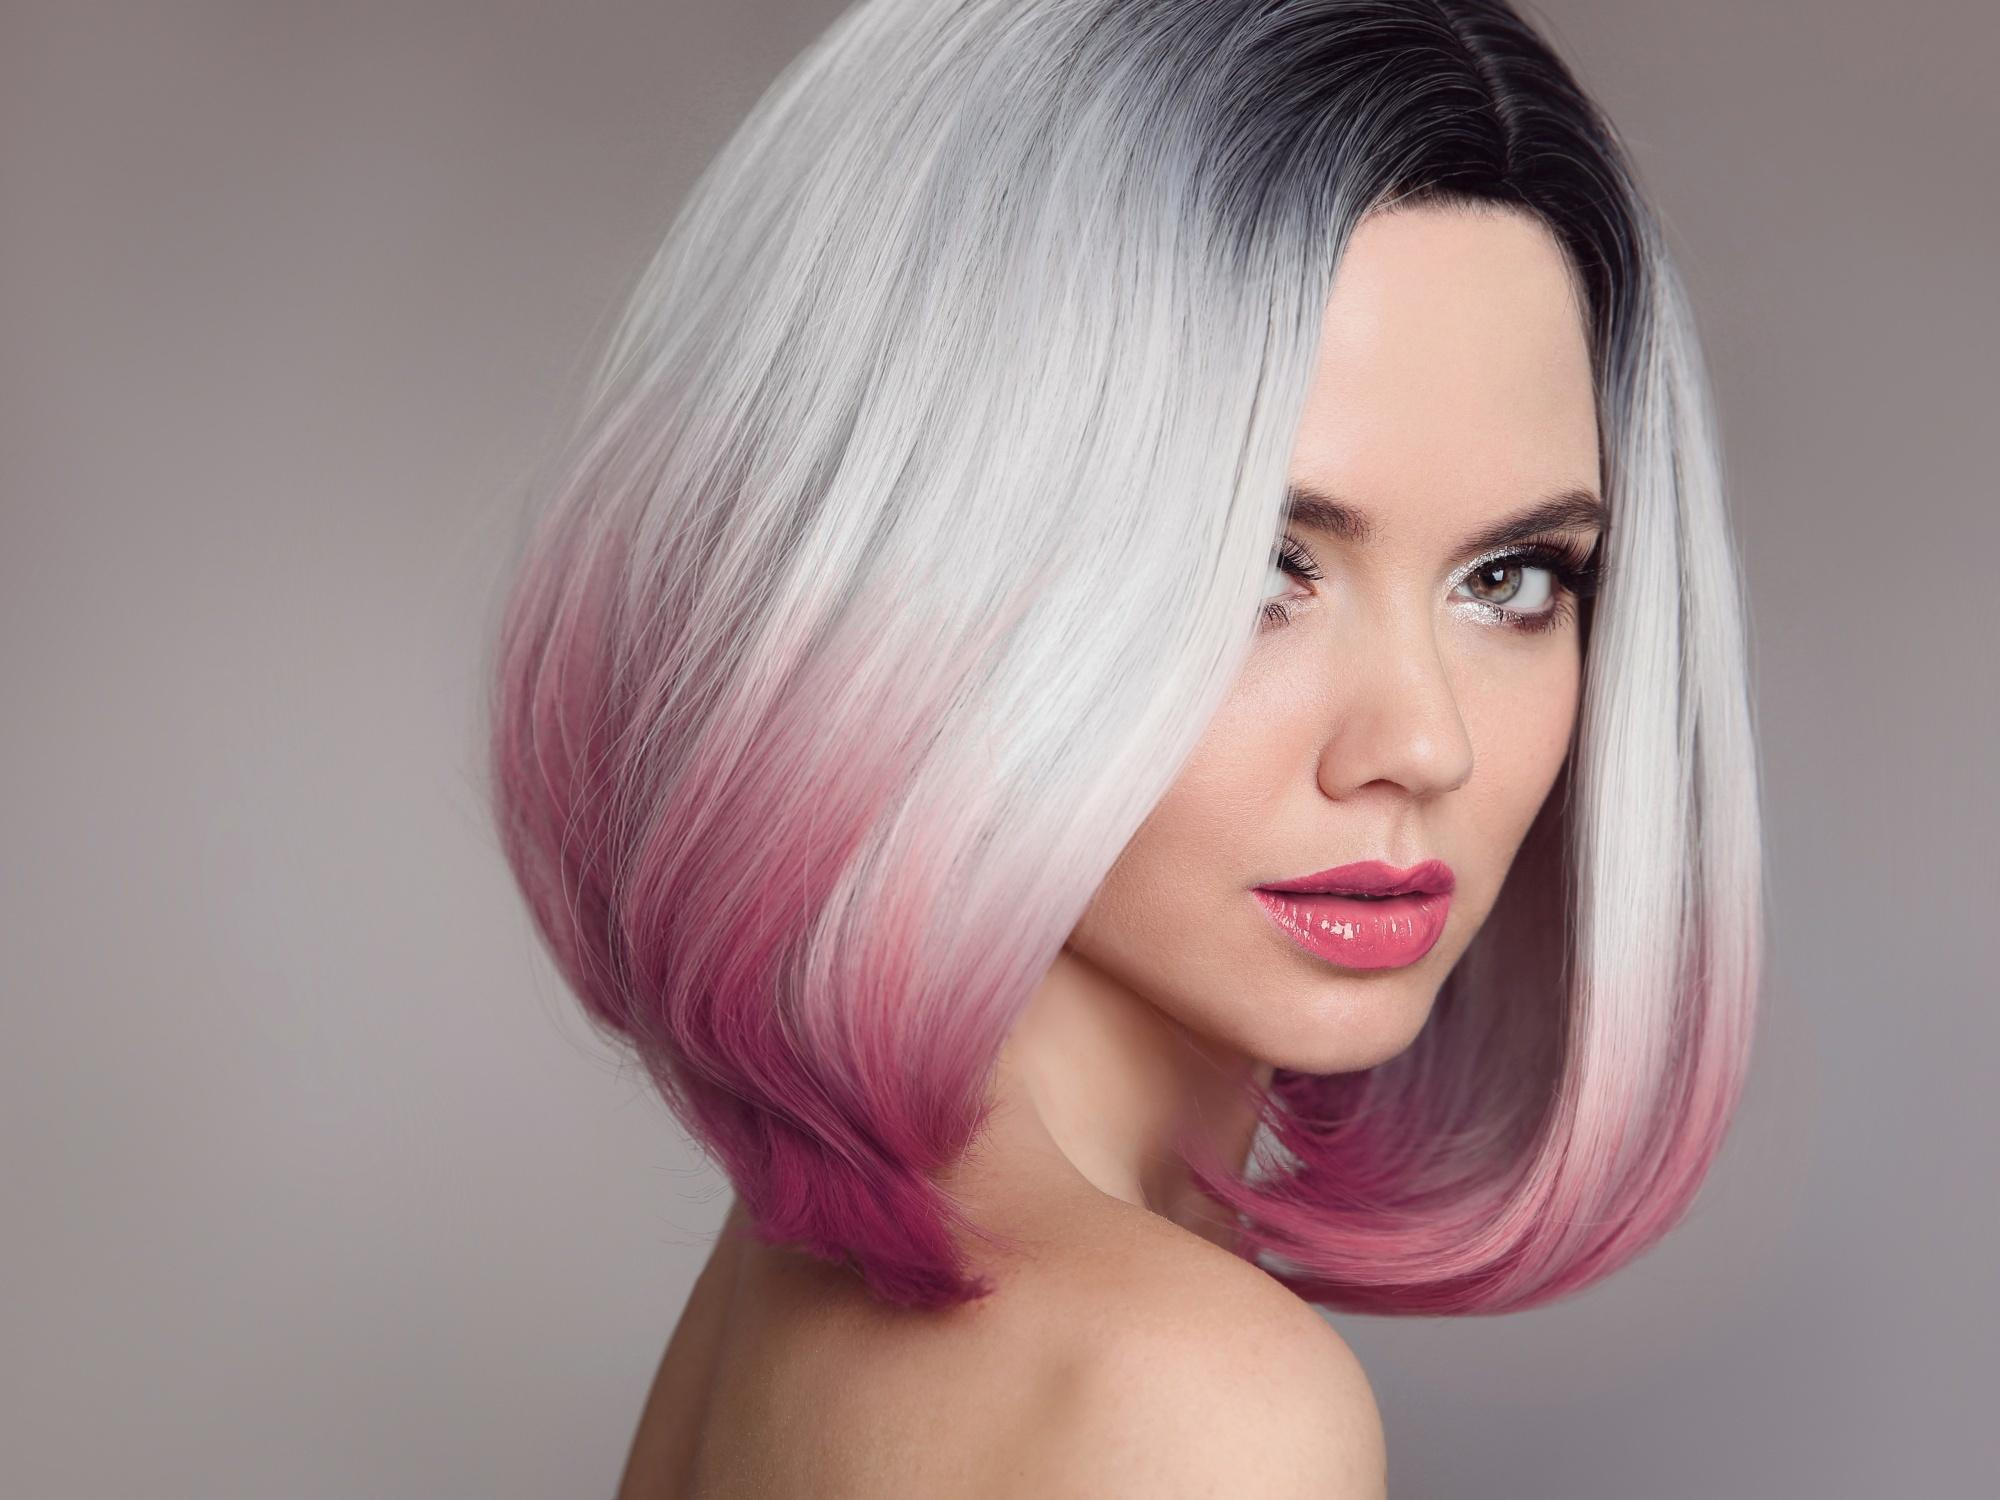 Woman with blonde to pink reverse ombre short hair